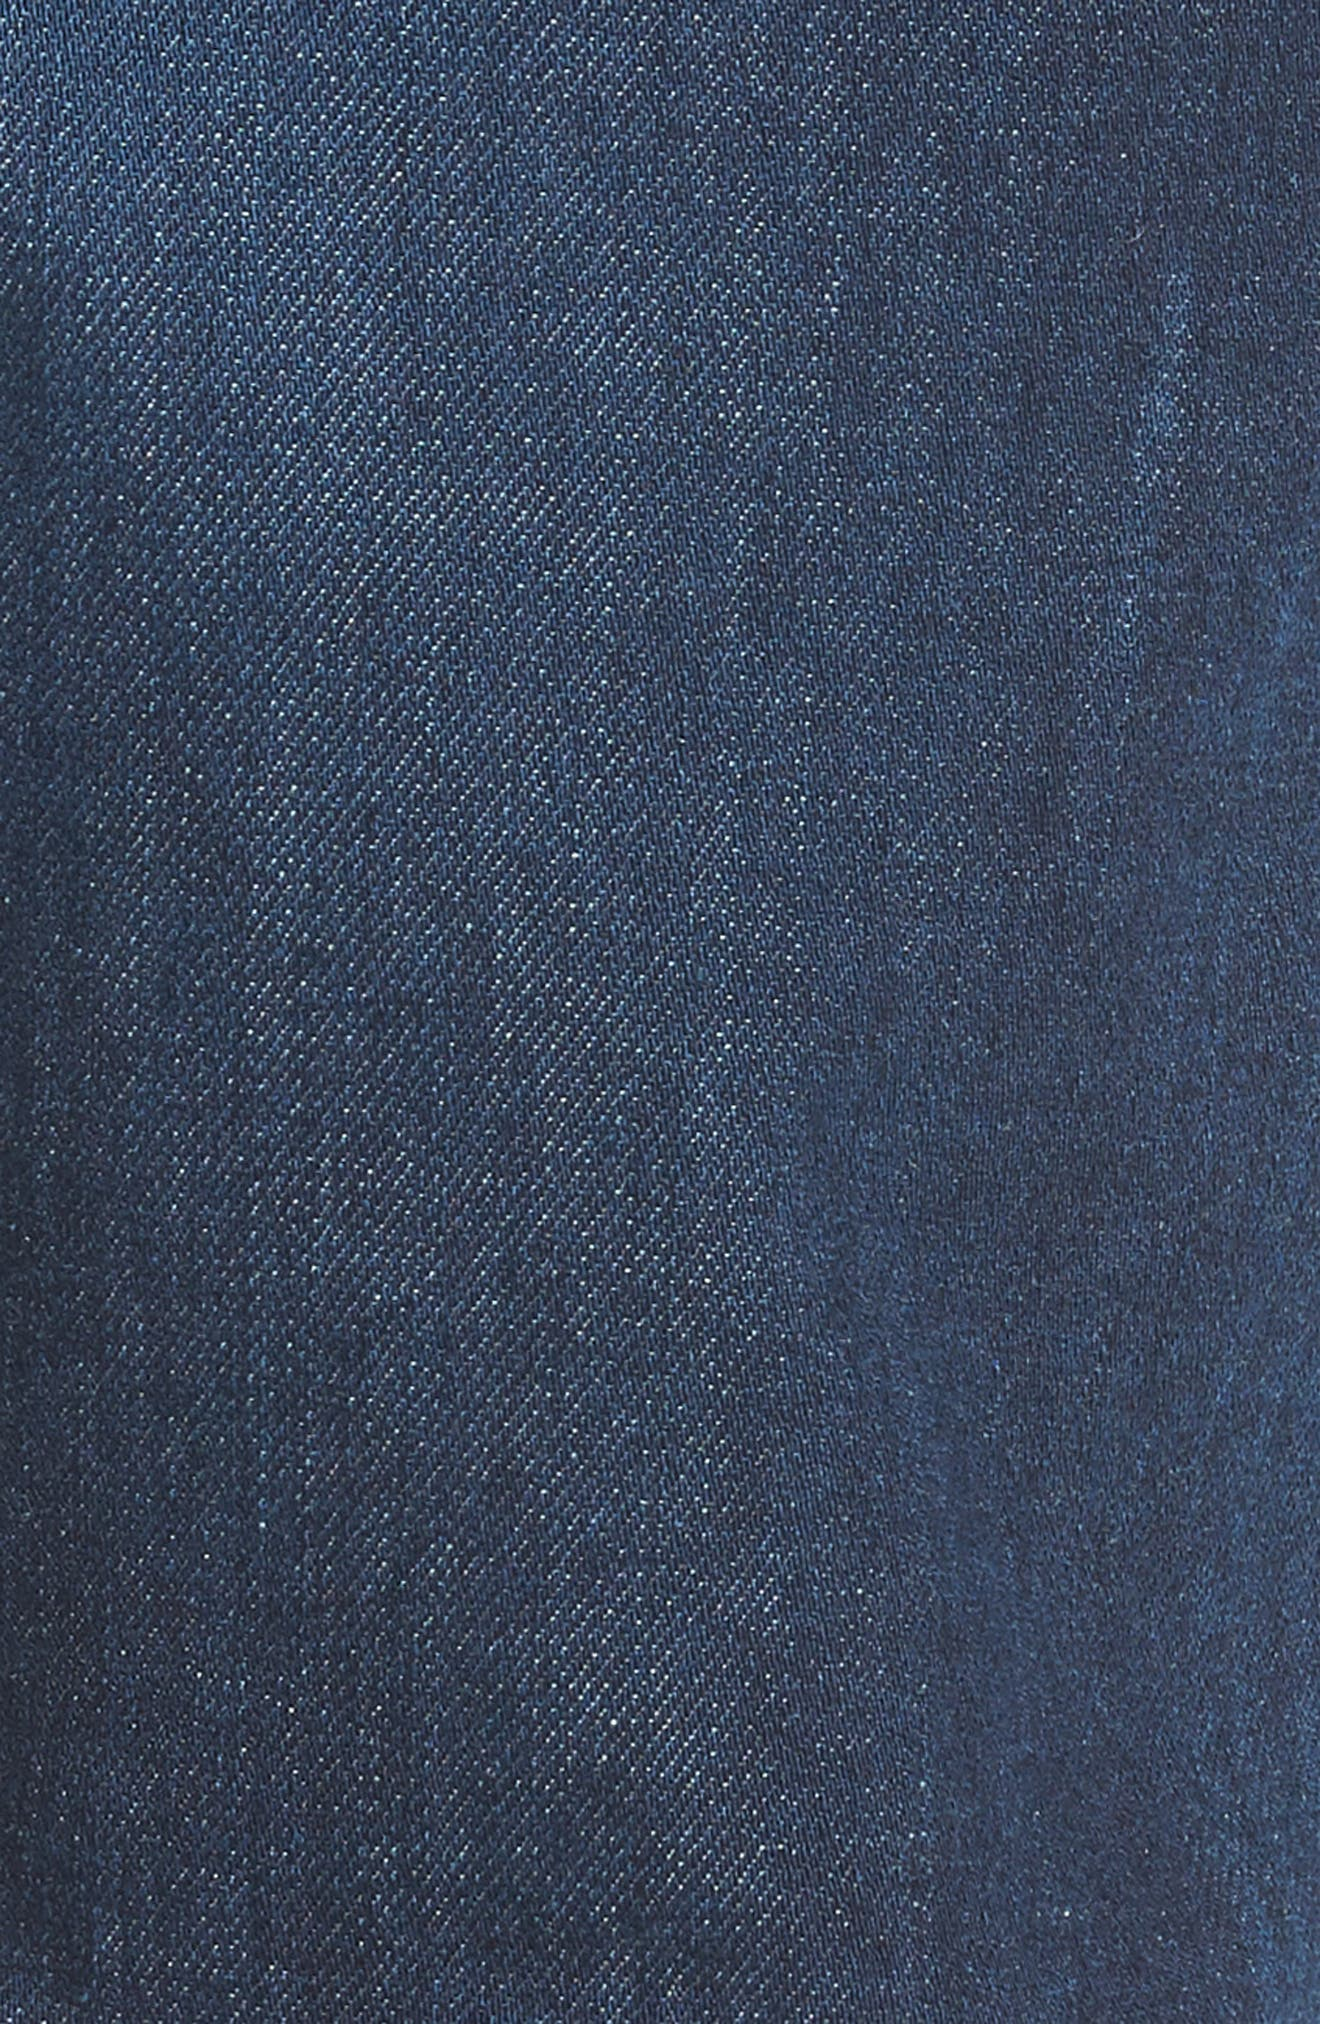 Dylan Skinny Fit Jeans,                             Alternate thumbnail 5, color,                             5 YEARS